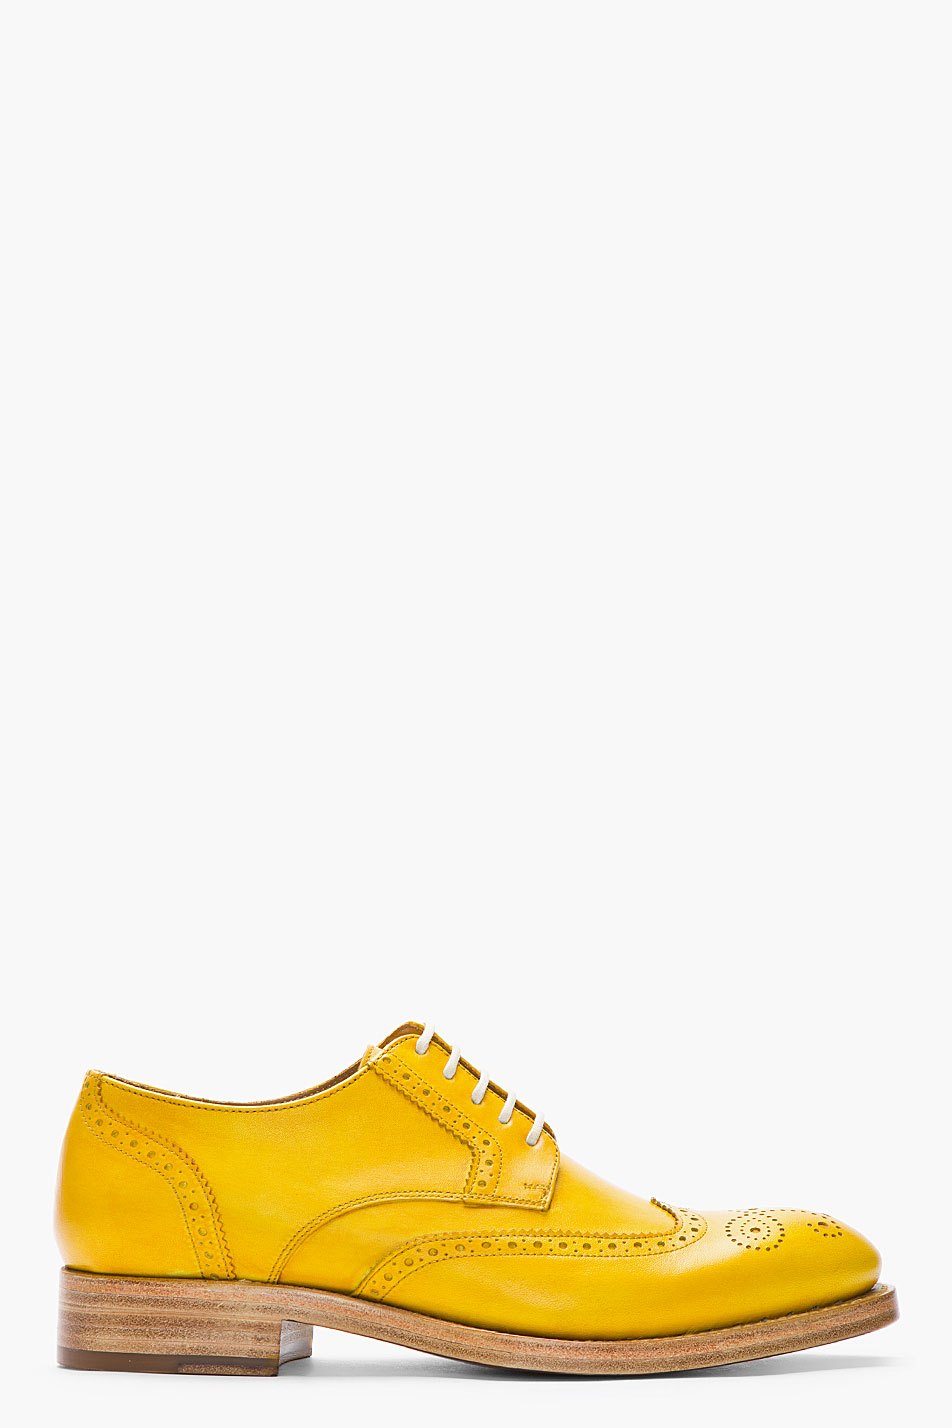 Lyst Kenzo Mustard Yellow Leather Elliott Wingtip